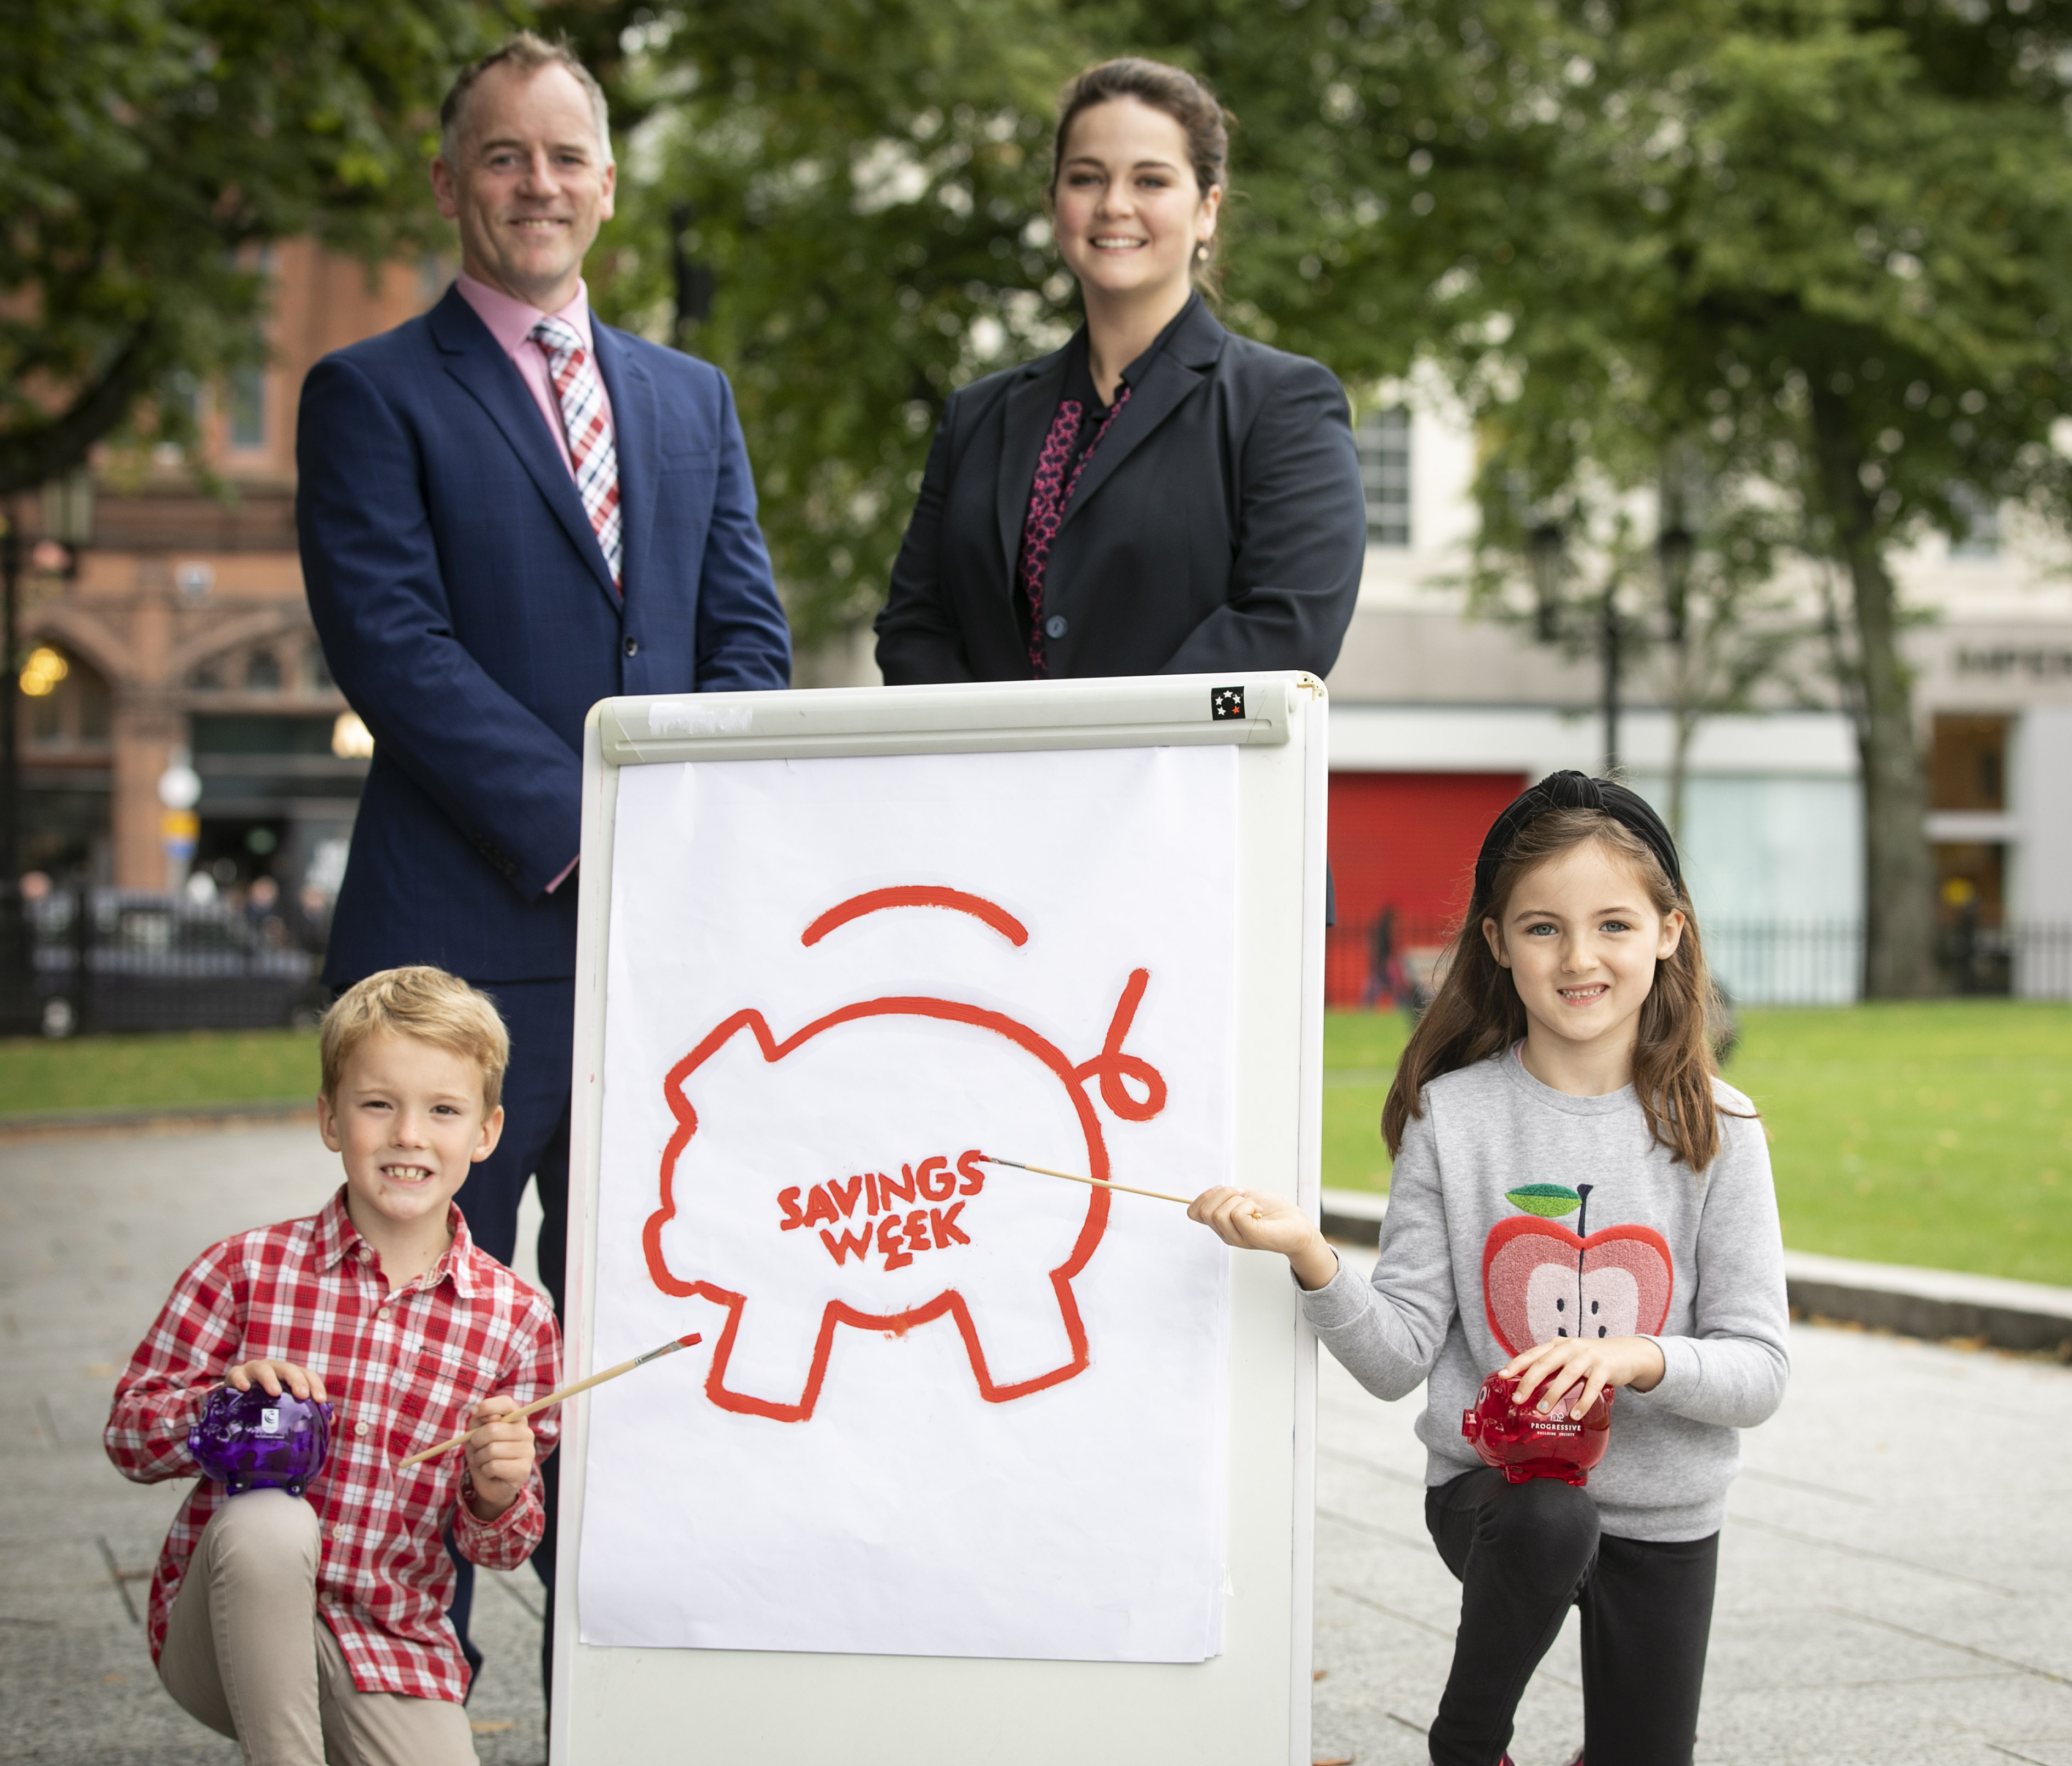 Northern Ireland Savings Week Launch Photo